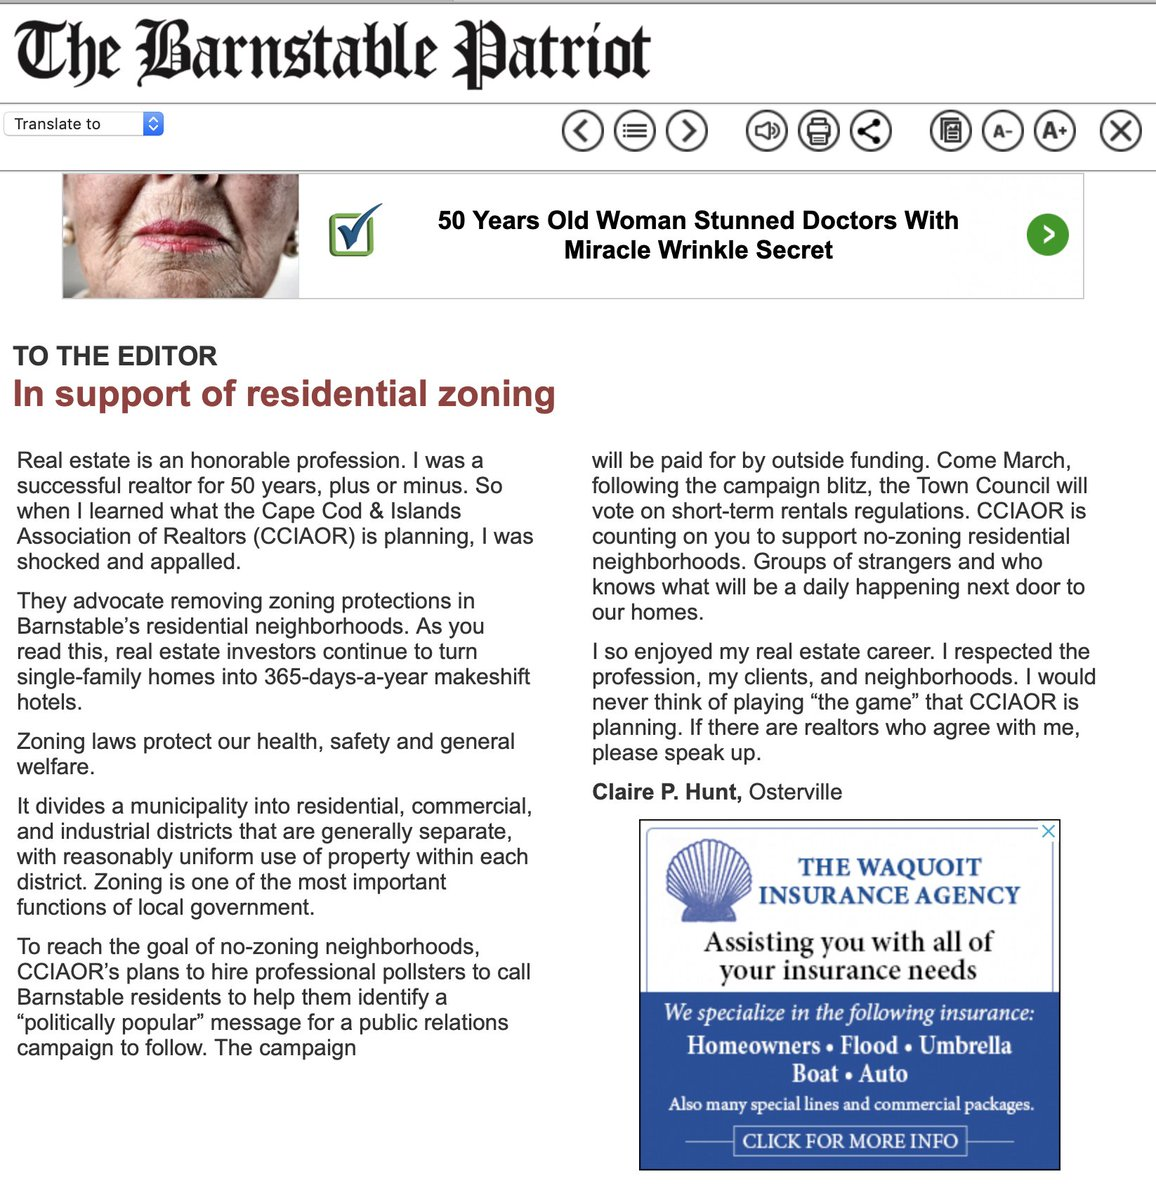 """Some #Realtors think Cape @marealtors pollster & lobby campaign (funded by nat'l org) to oppose STR Zoning laws in #Barnstable is appalling and a """"game"""".  #realtors  who ❤️ our neighborhoods as we do oughta speak up.  @BarnstablePatch"""